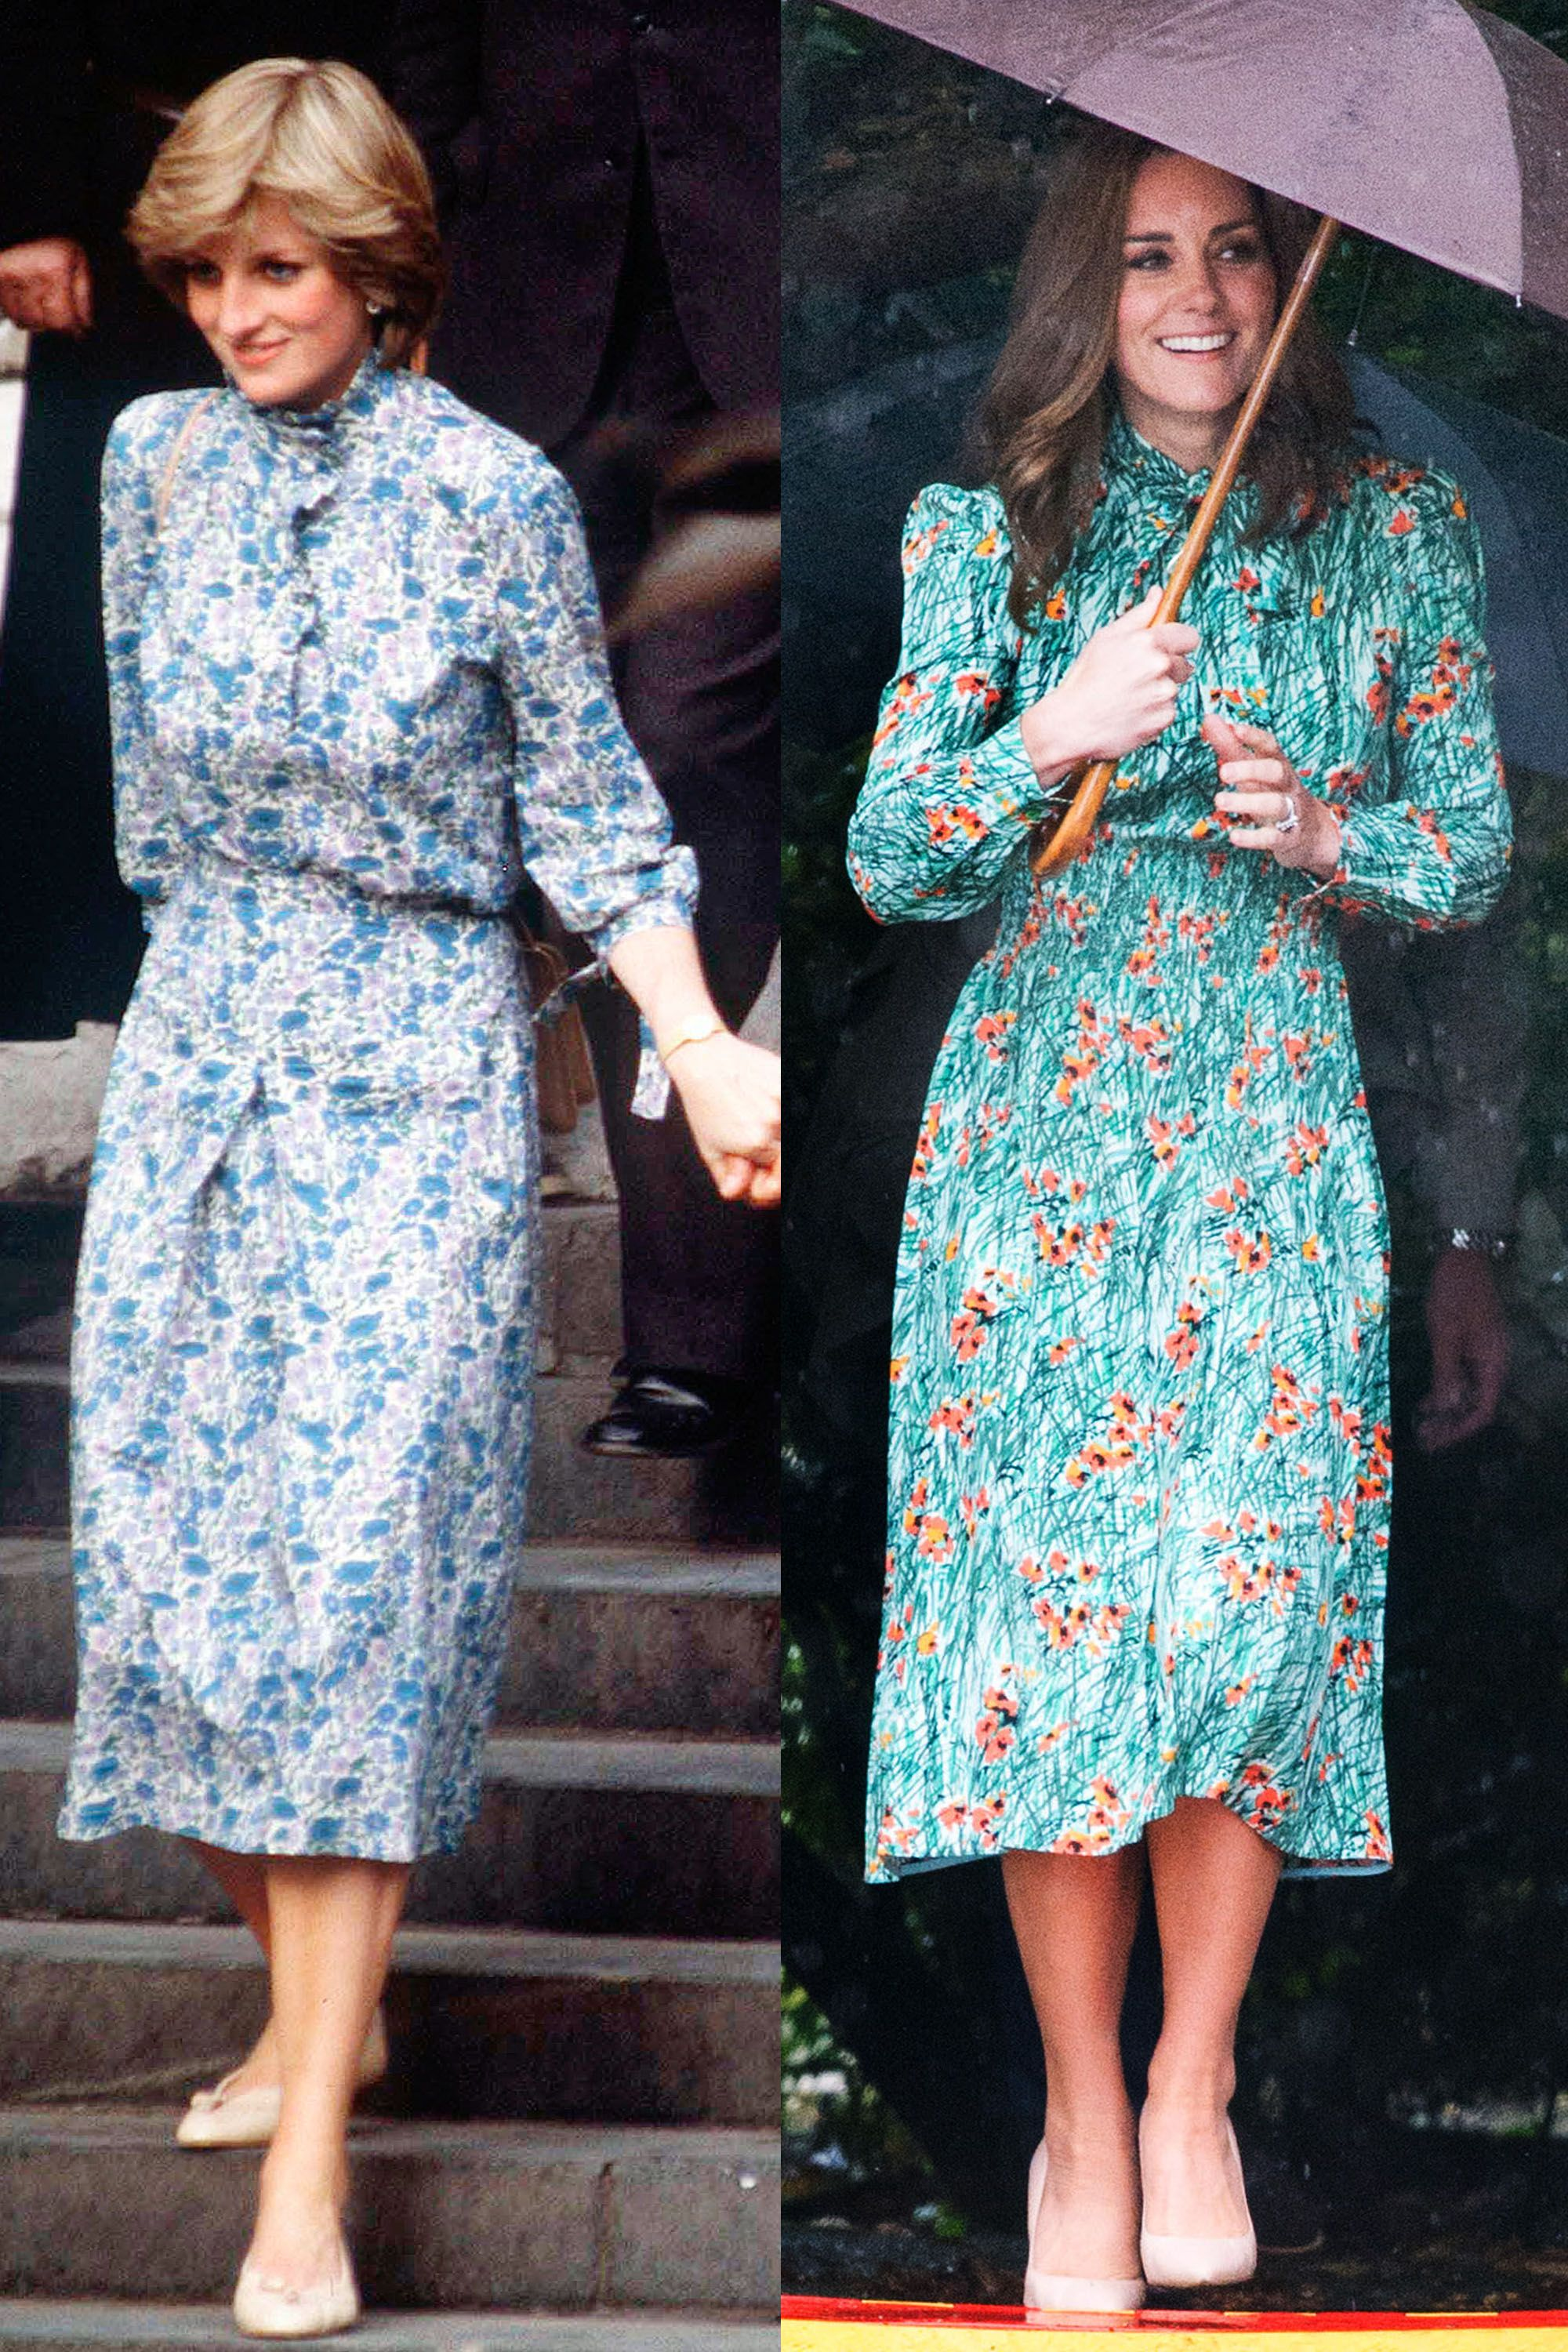 Princess Diana in blue floral dress in 1981; Kate Middleton in green floral dress in 2017